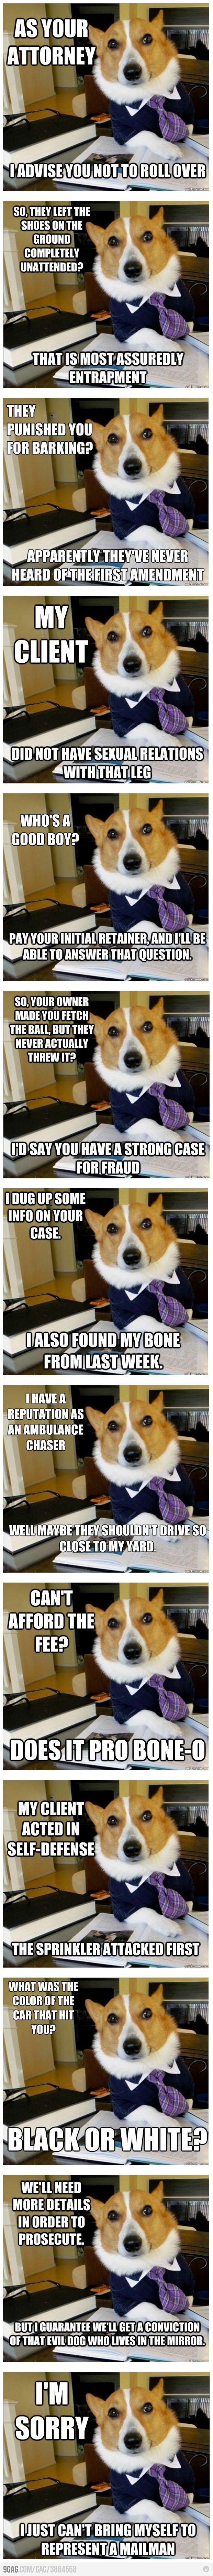 Lawyer corgi is the best.